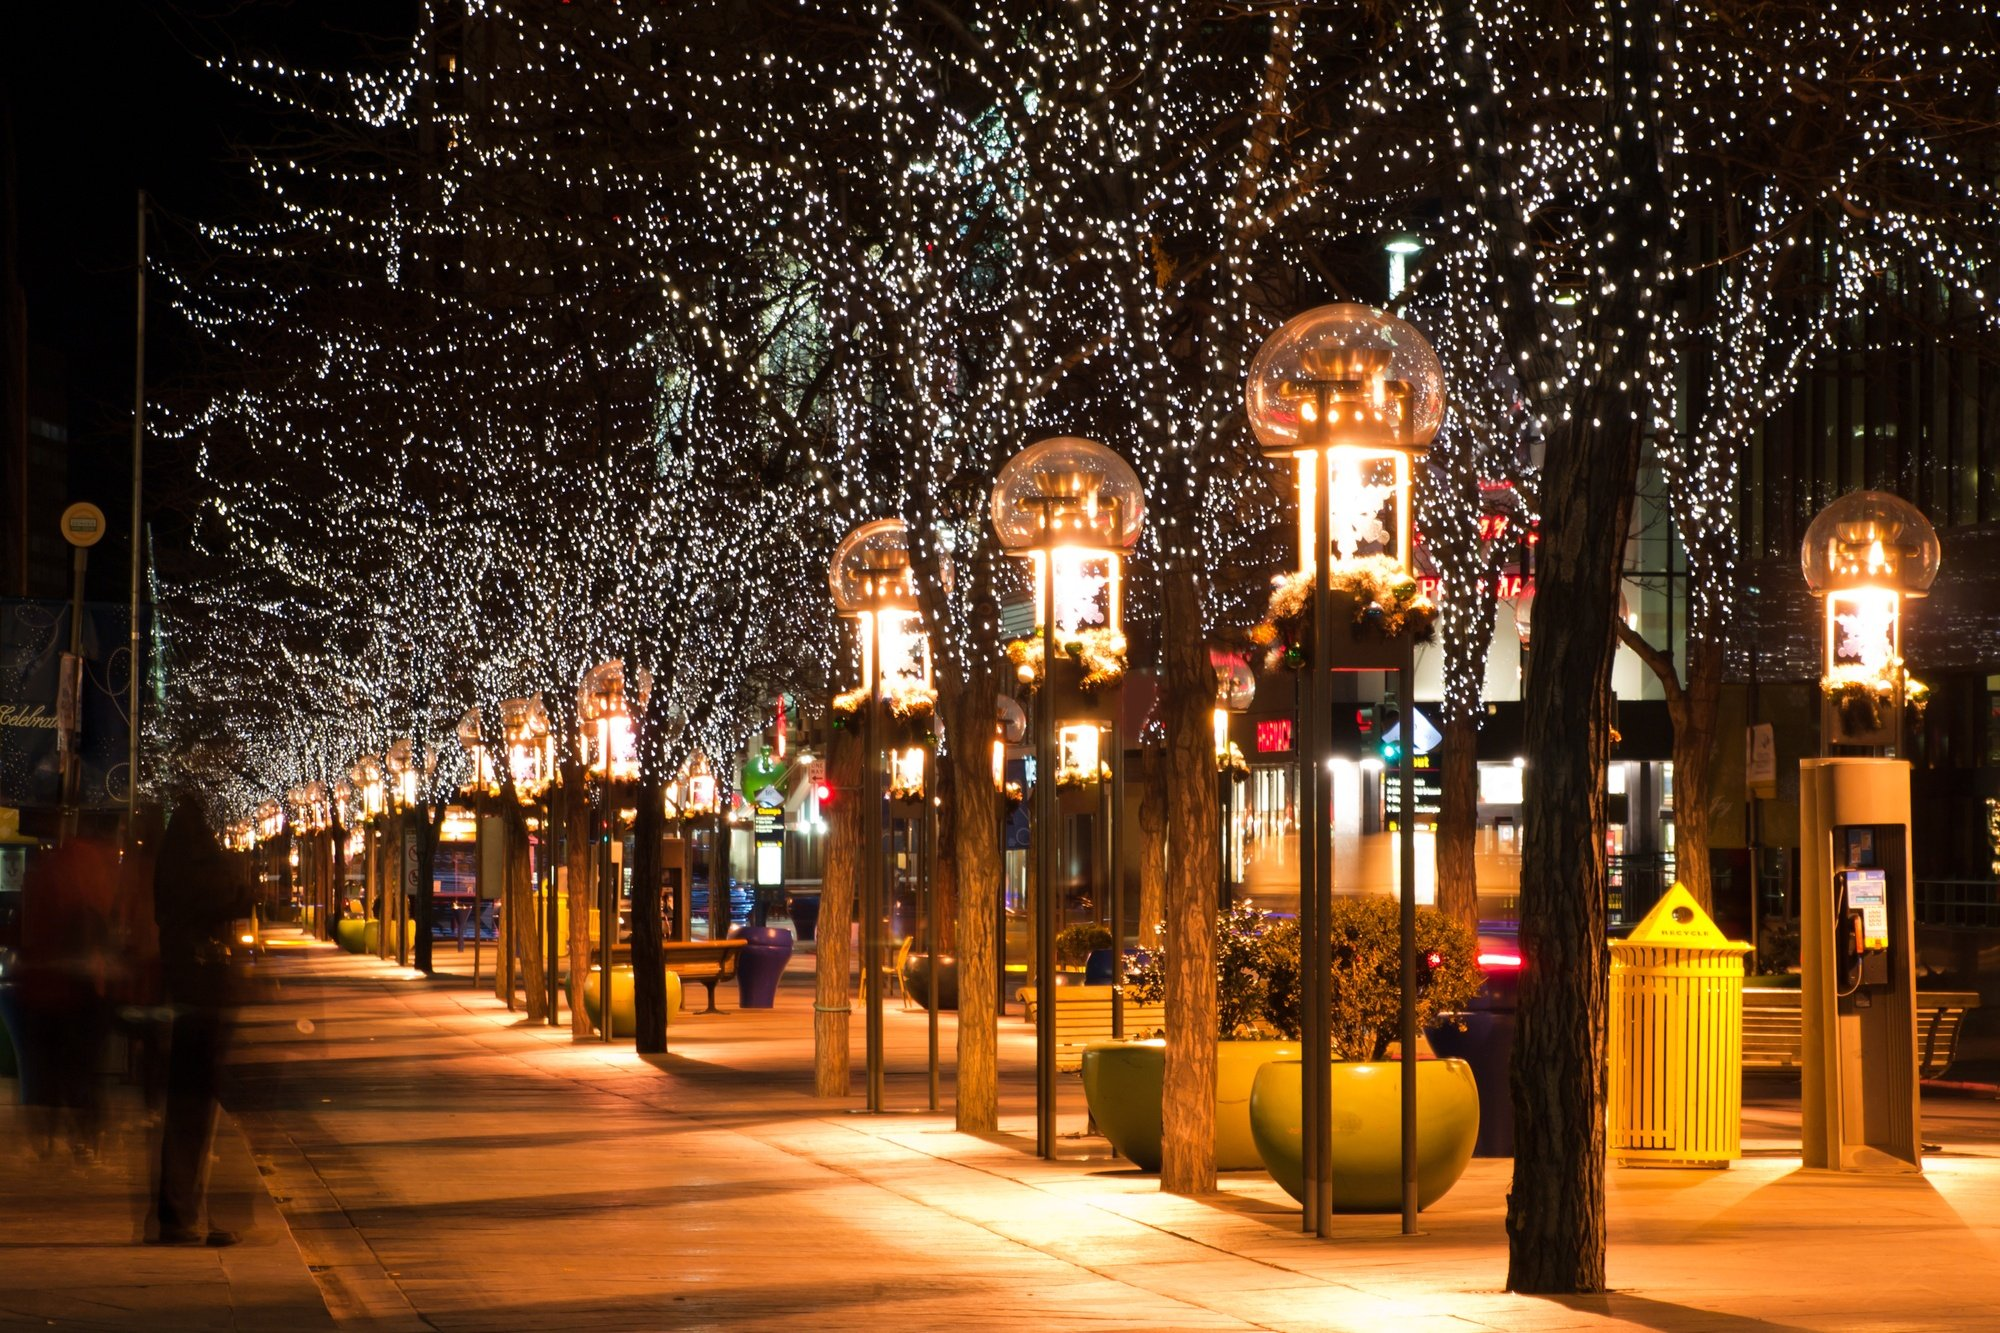 Denver's 16th Street Mall lit up for the holidays